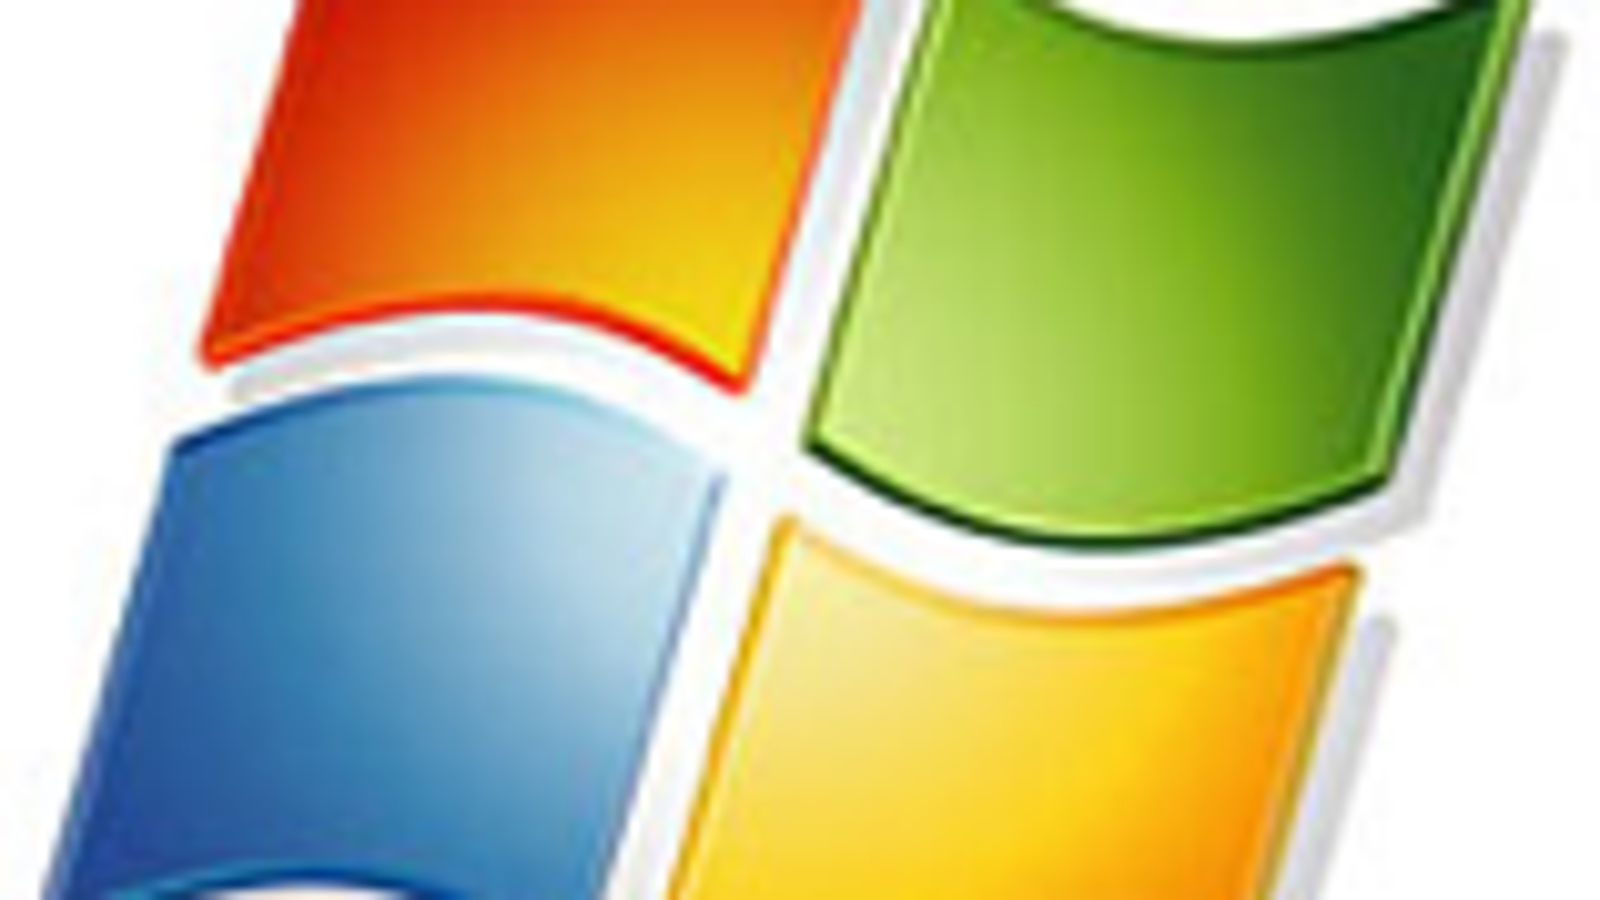 Windows XP Service Pack 3 Available on Microsoft's Servers